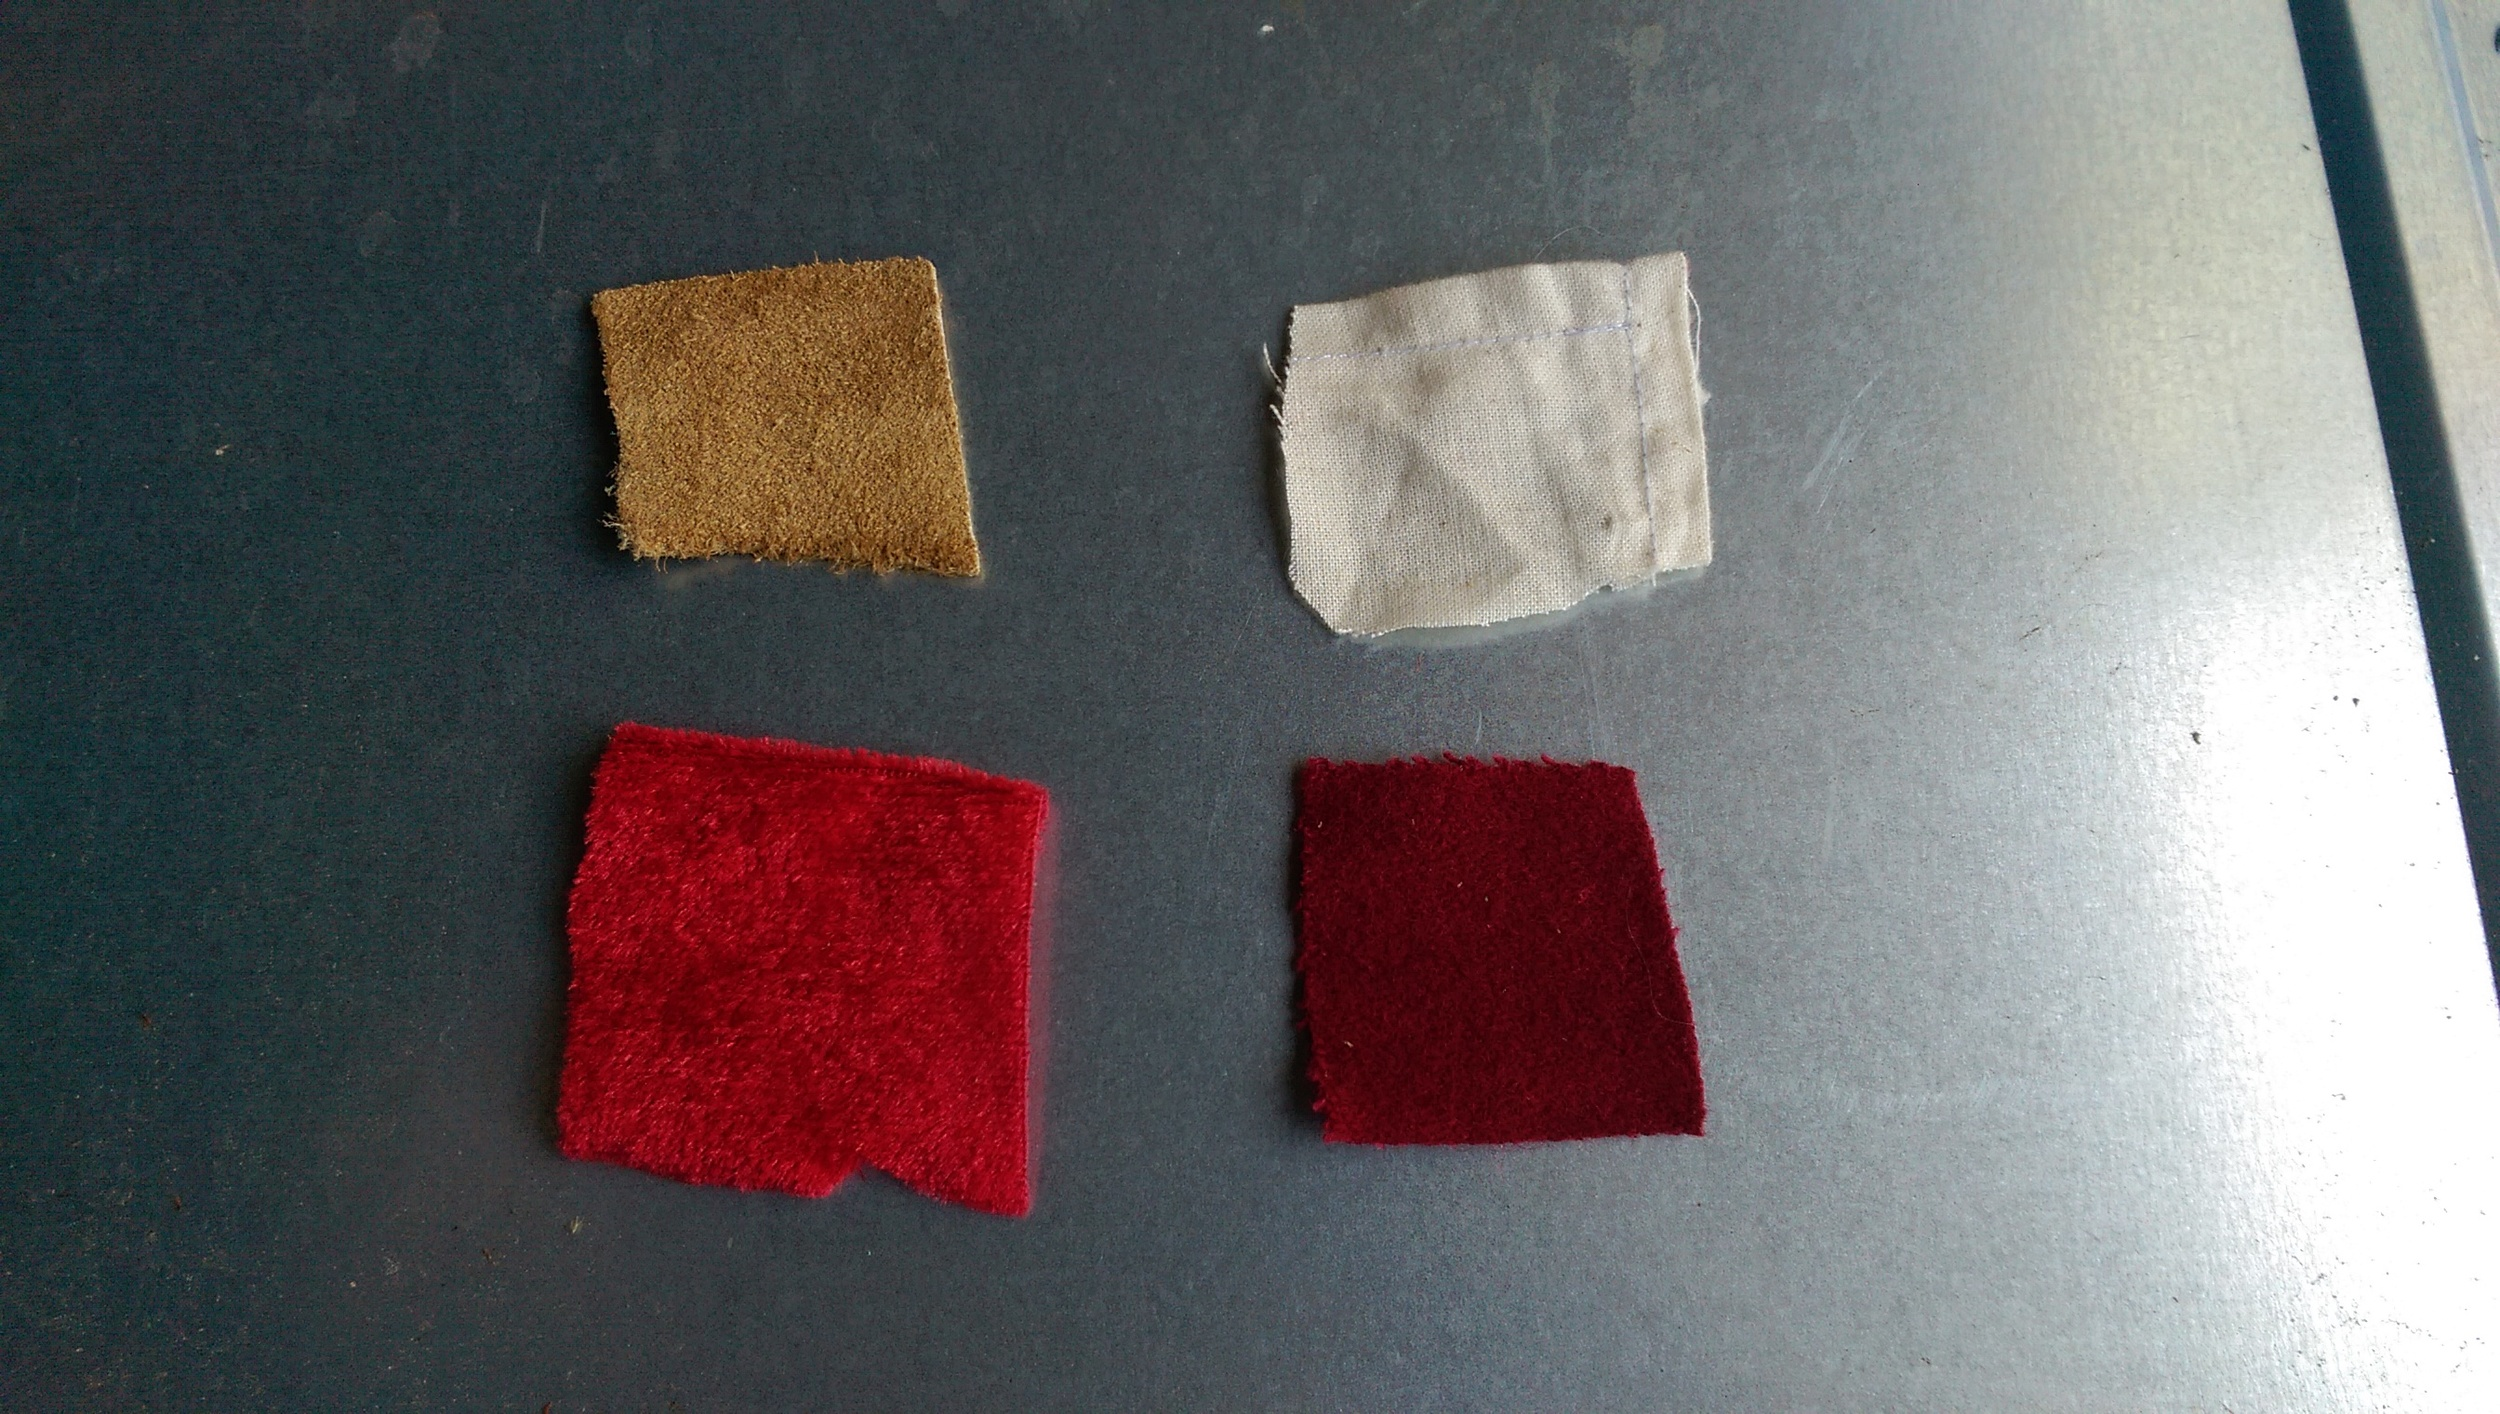 From upper left clockwise: leather, cotton linen, wool, red velvet